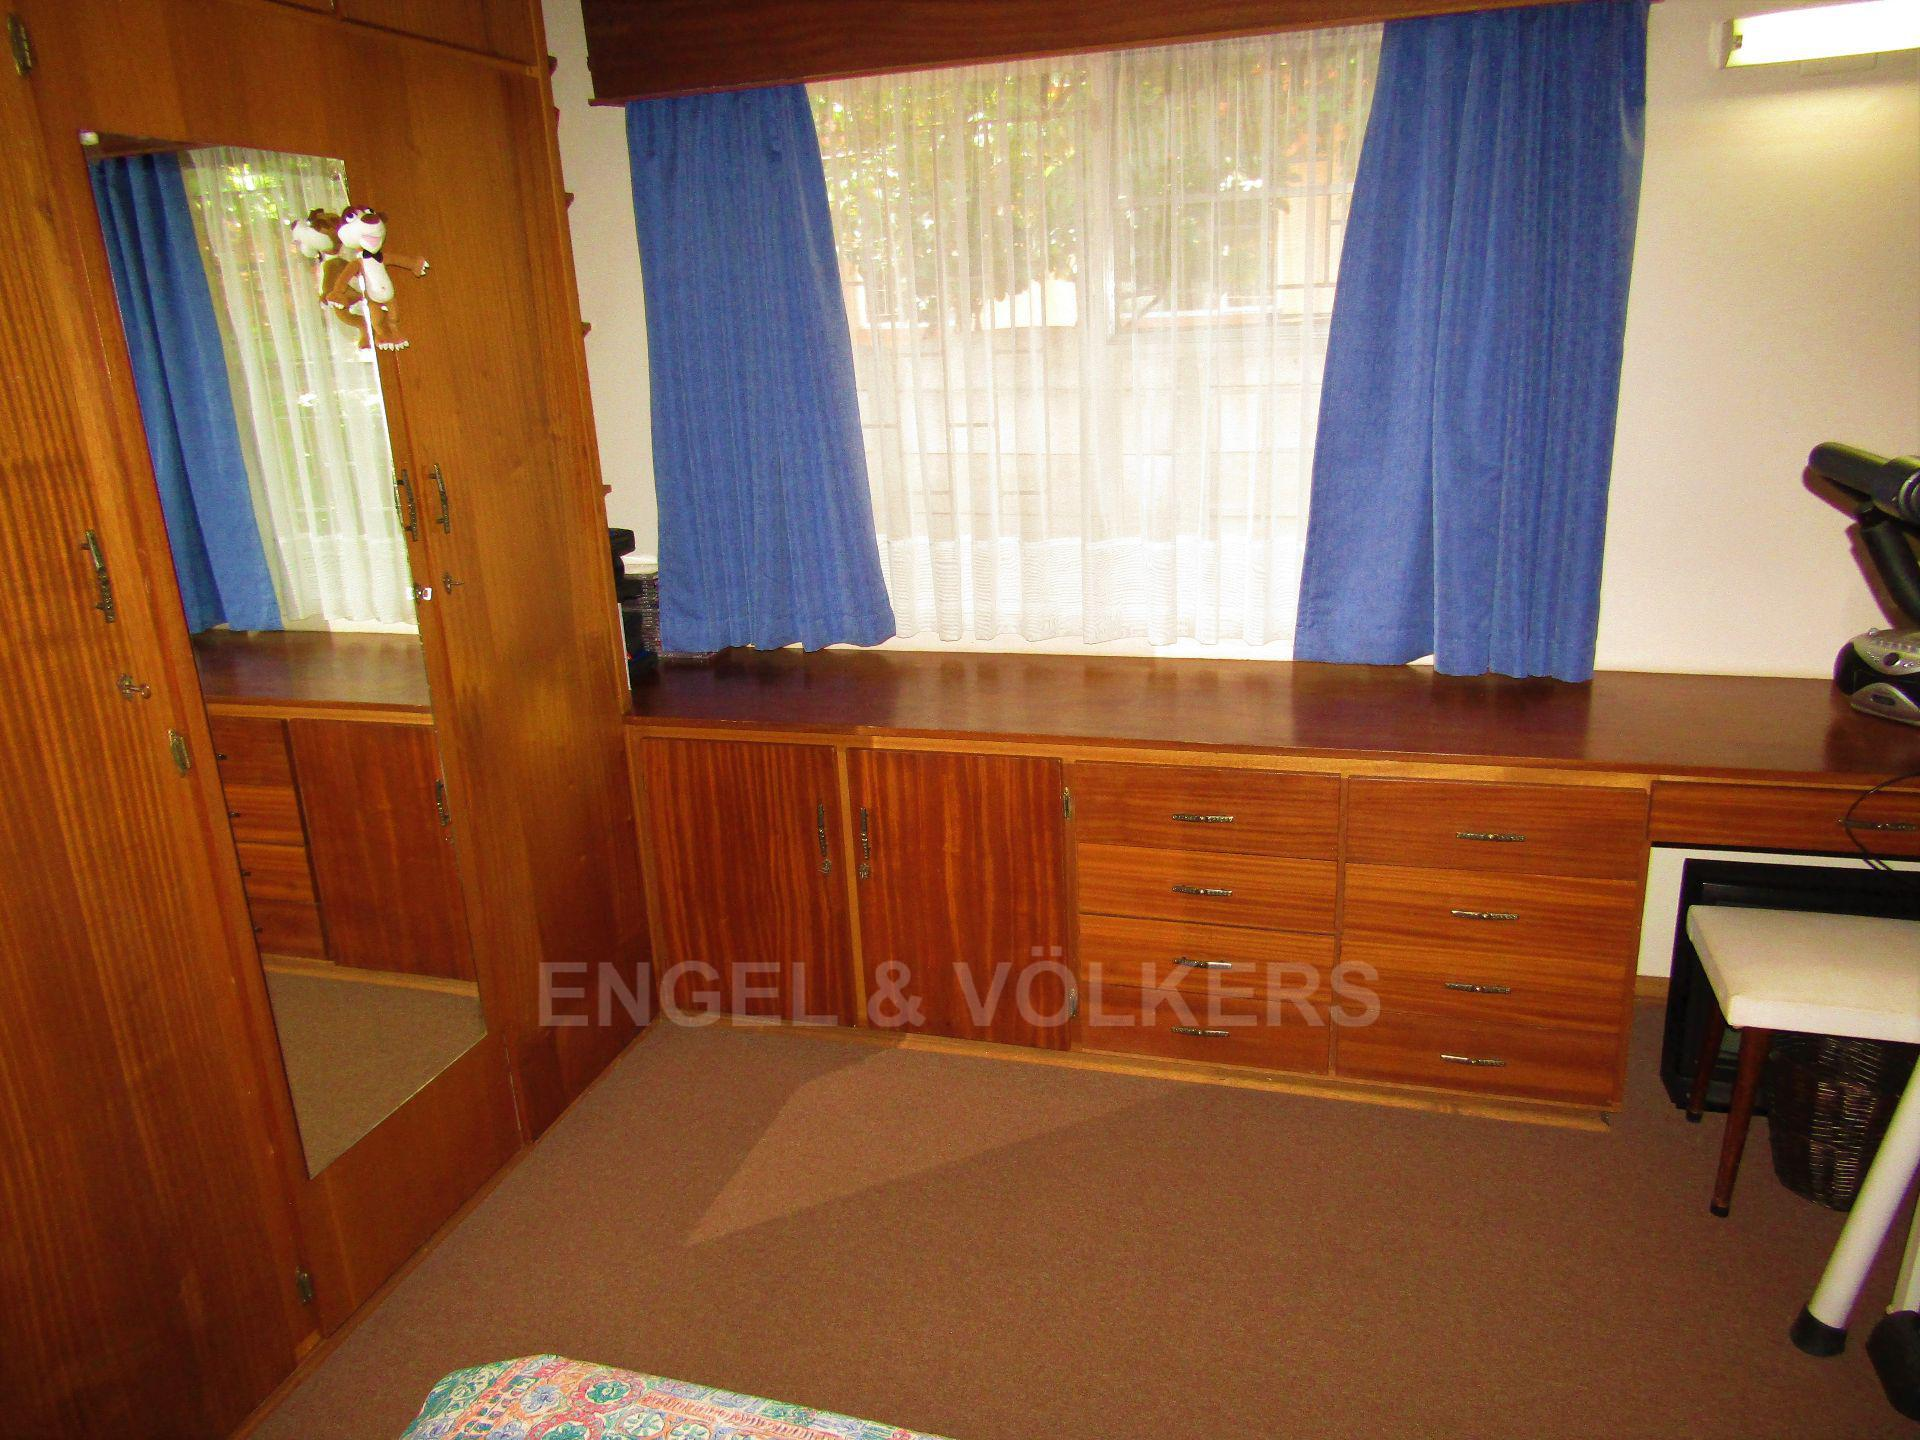 Heilige Akker property for sale. Ref No: 13565633. Picture no 21